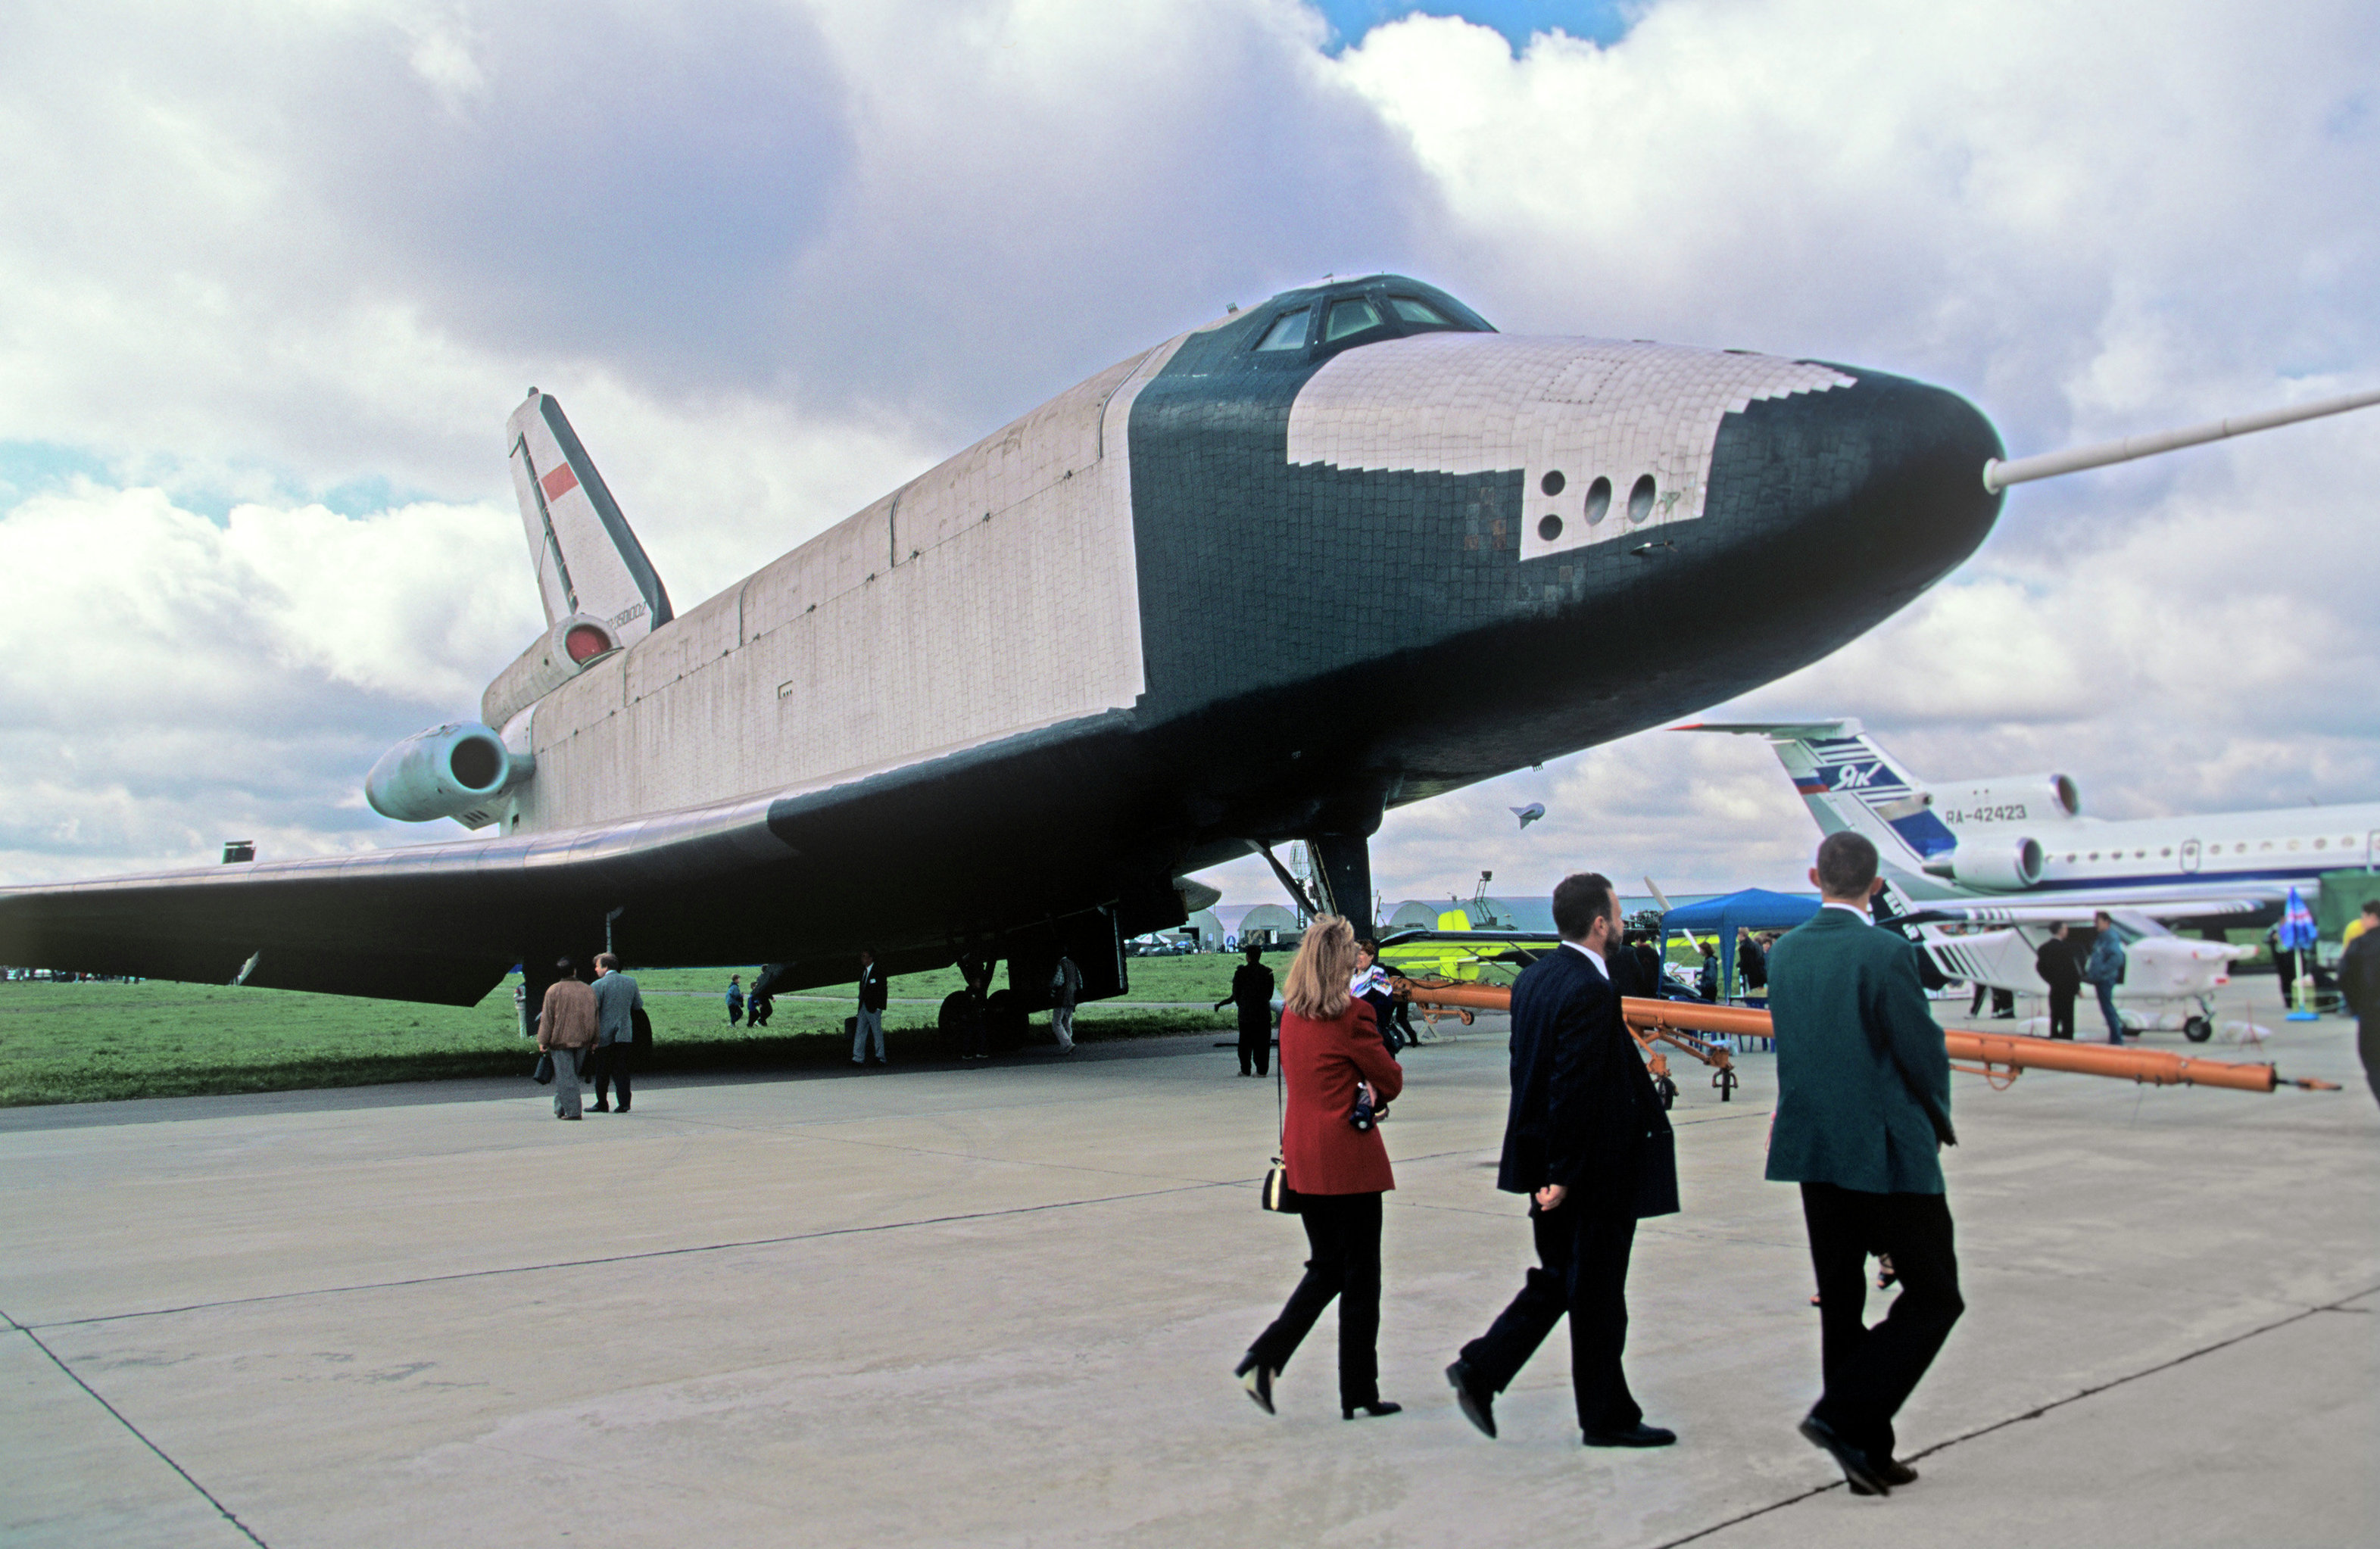 soviet space shuttle revived - photo #3